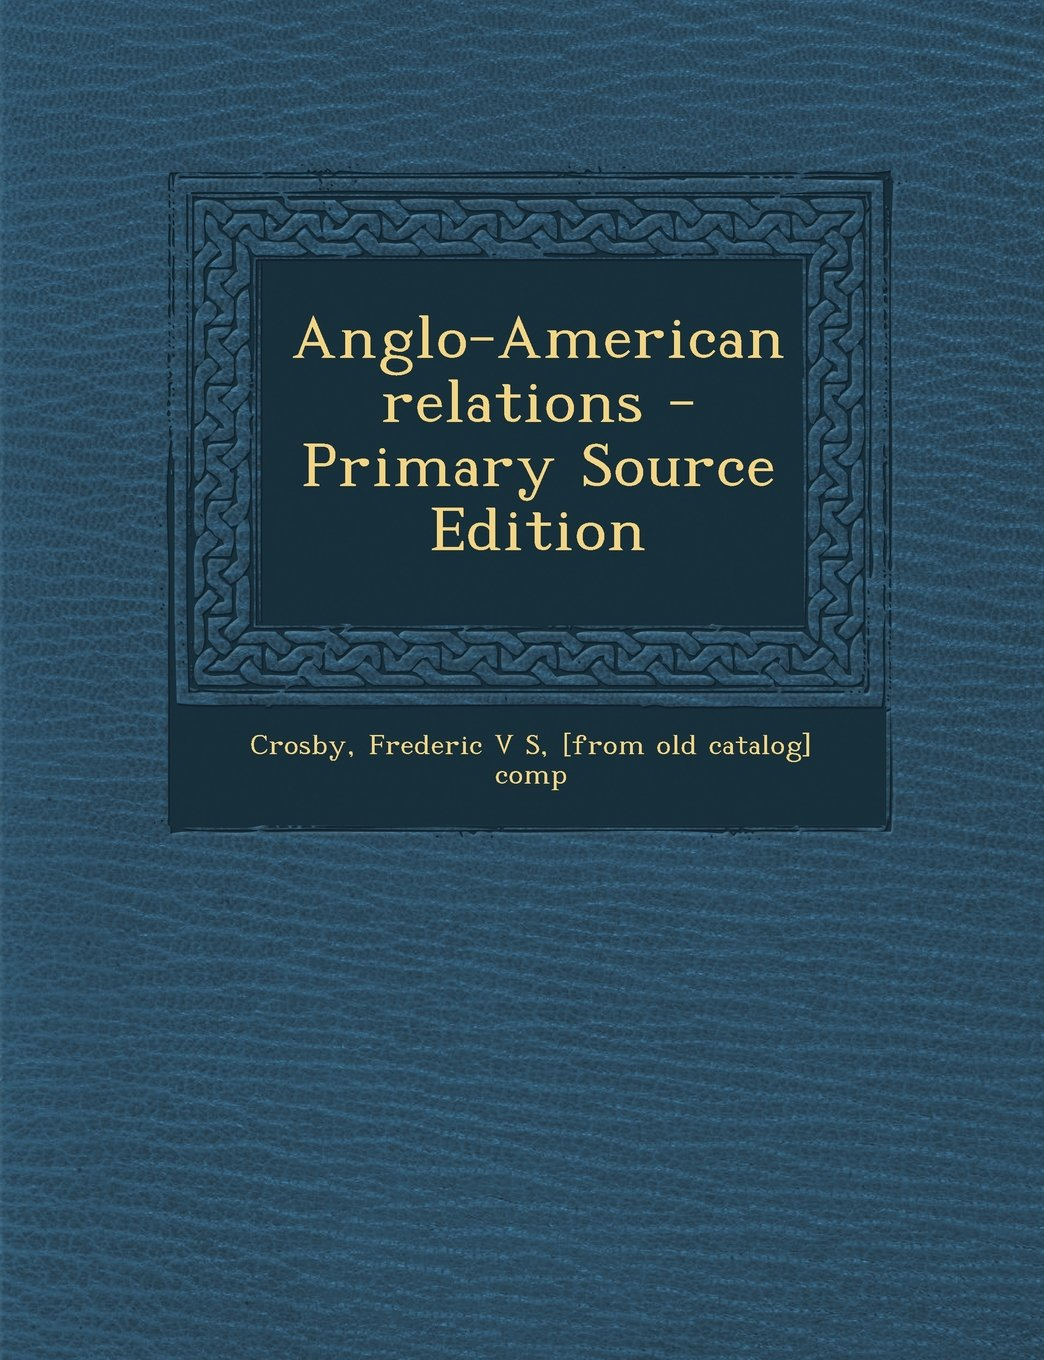 Anglo-American relations pdf